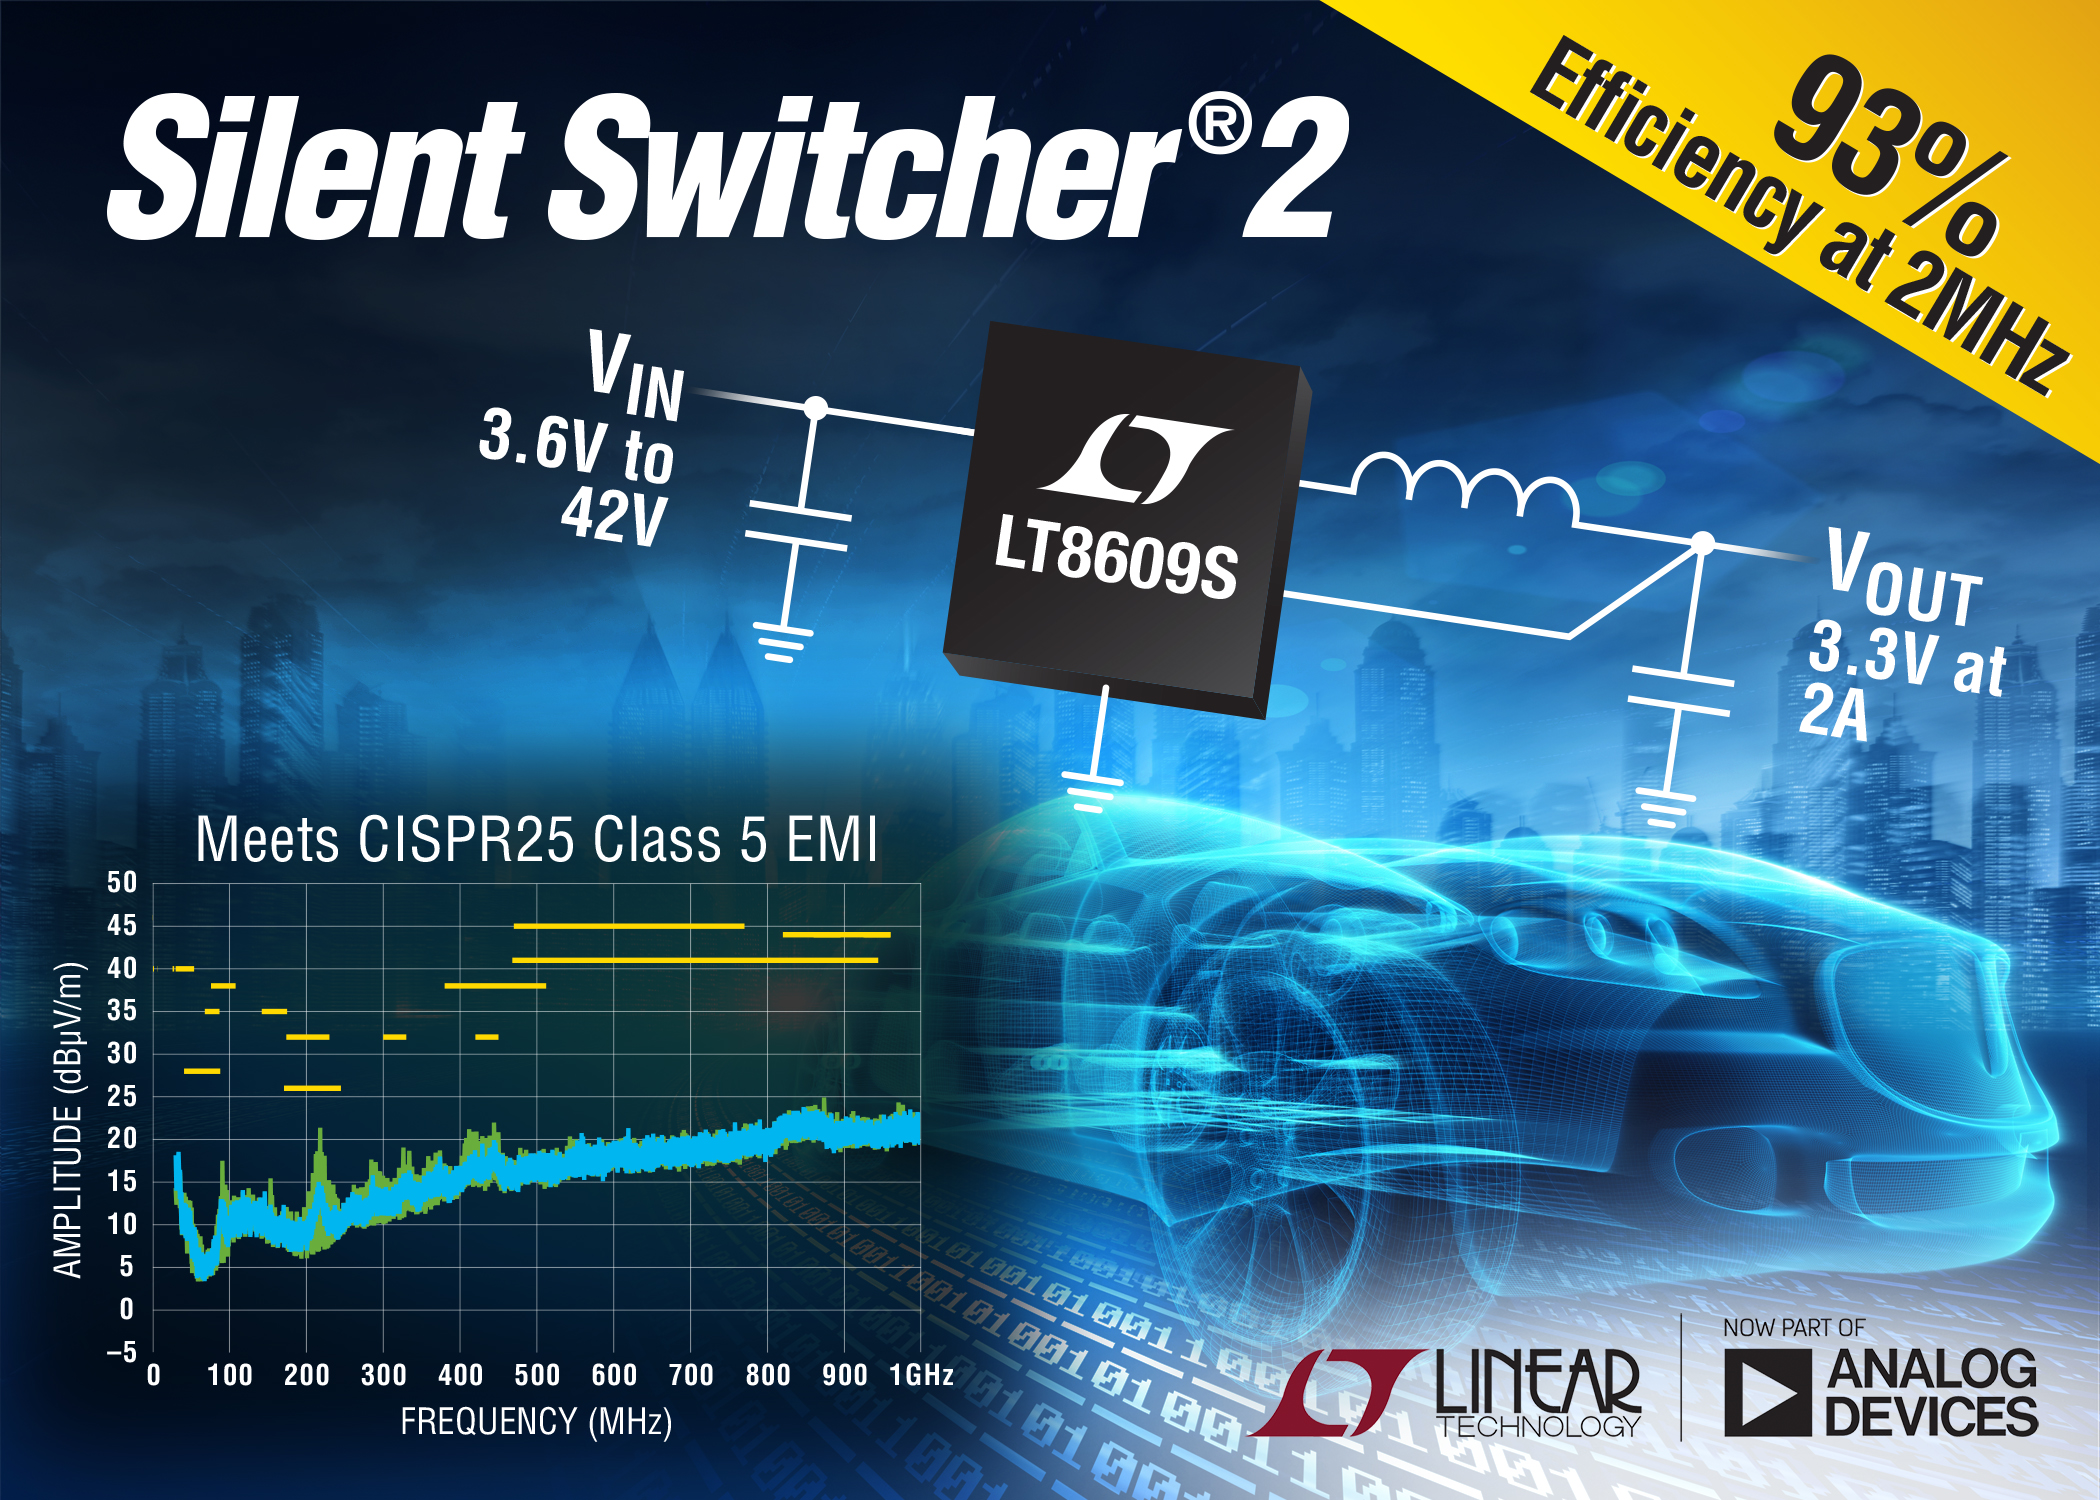 Silent Switcher 2 delivers 93% efficiency at 2MHz